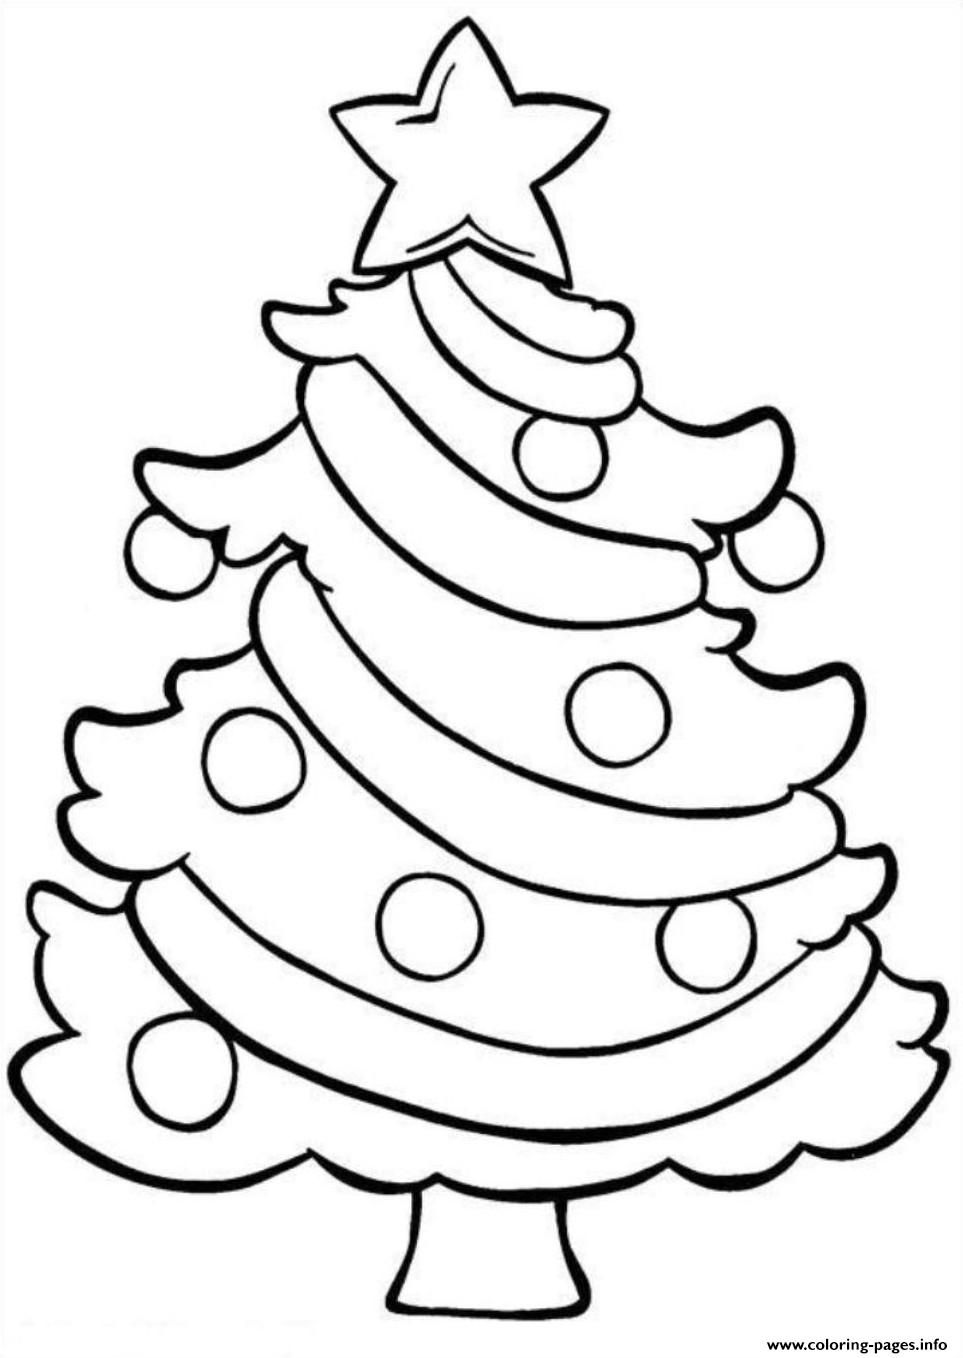 Undefined Christmas Tree Coloring Page Christmas Coloring Sheets Free Christmas Coloring Pages